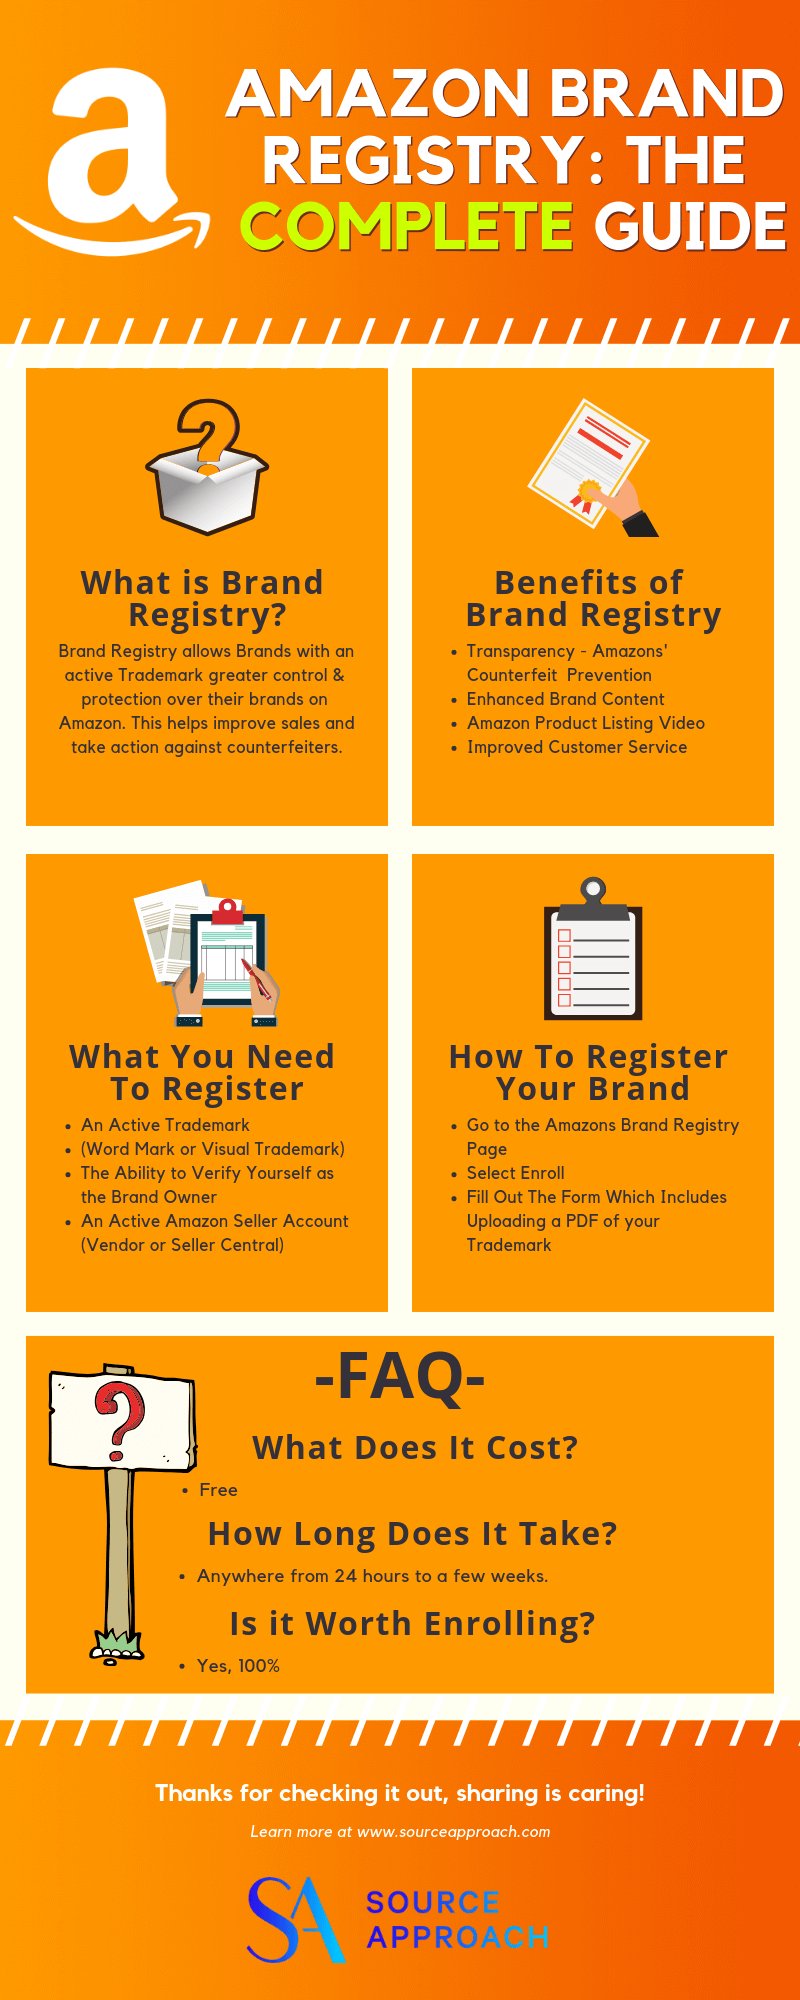 INFOGRAPHIC - Amazon Brand Registry - The Complete Guide - The Source Approach - Amazon Consultant and eCommerce Consultant